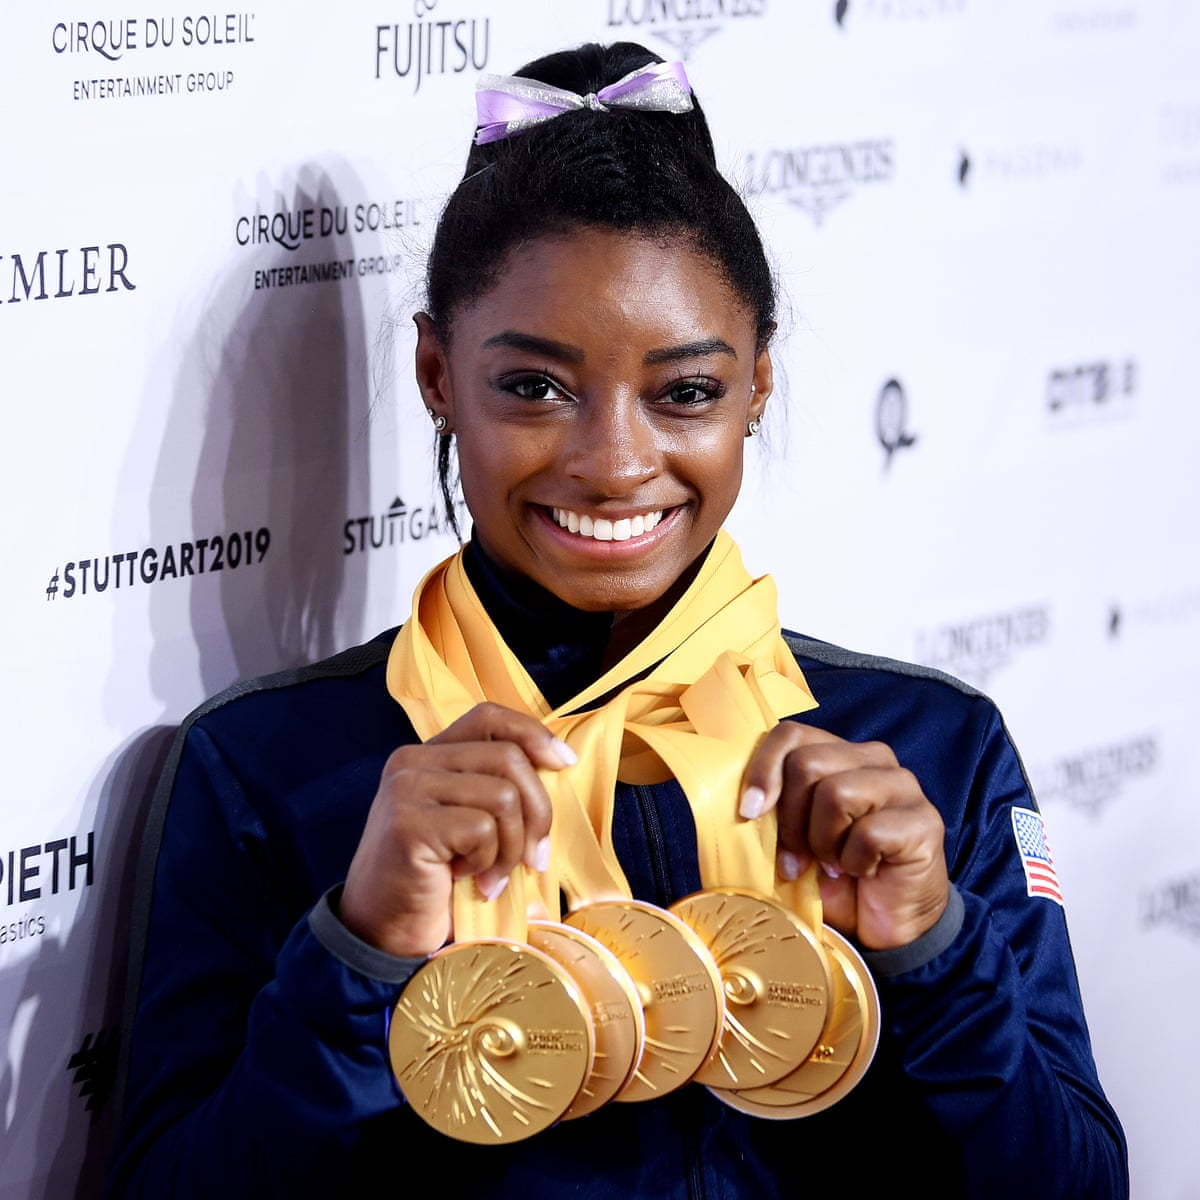 The unstoppable Simone Biles shows again her only competition is herself   Simone Biles   The Guardian